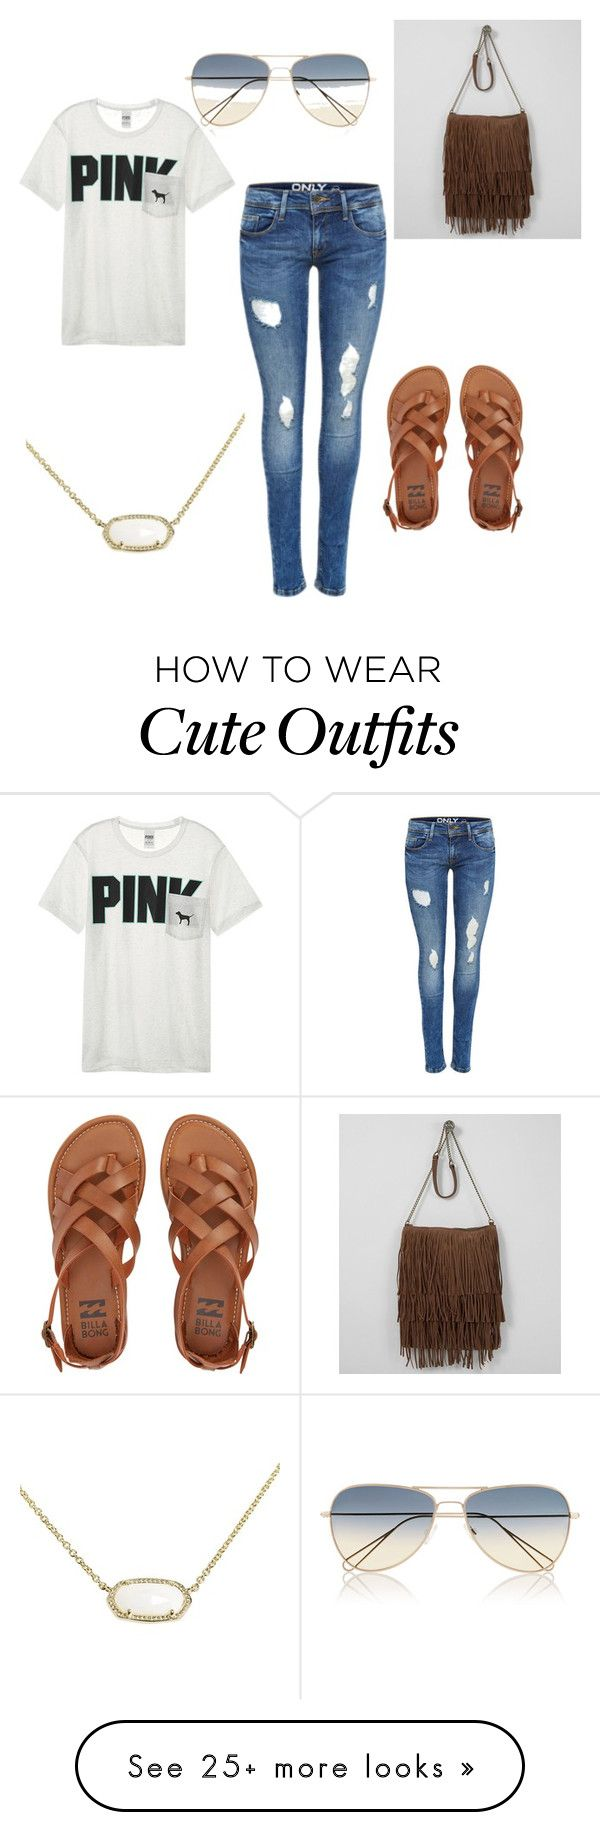 """""""Daily outfit"""" by toriataylor17 on Polyvore featuring Billabong, Victoria's Secret, T-shirt & Jeans, Kendra Scott and Isabel Marant"""